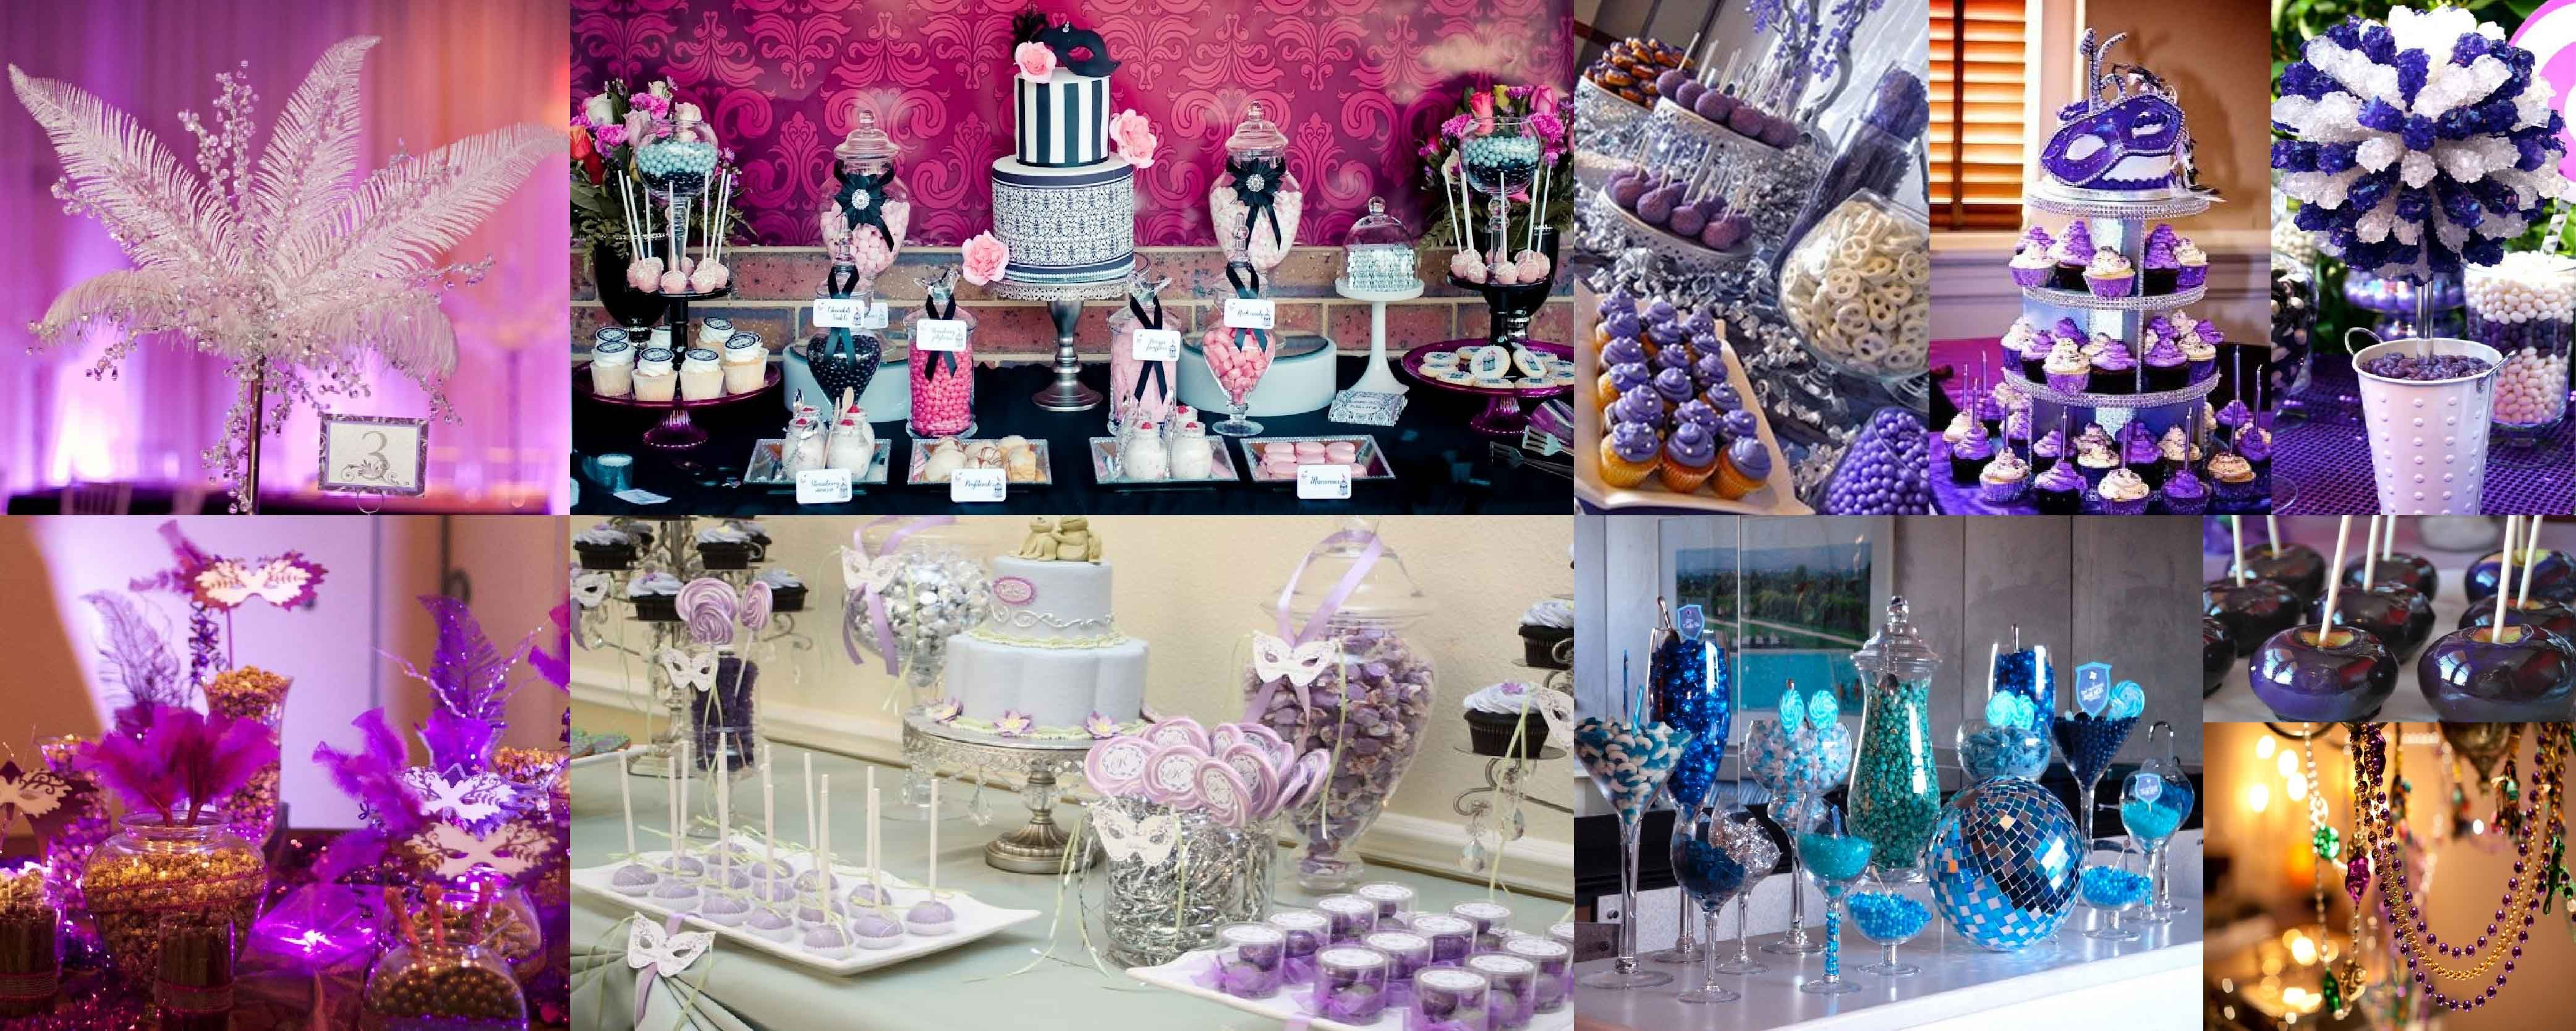 Masquerade Theme Decoration Ideas Part - 15: Masquerade Party Decorations Ideas - Google Search